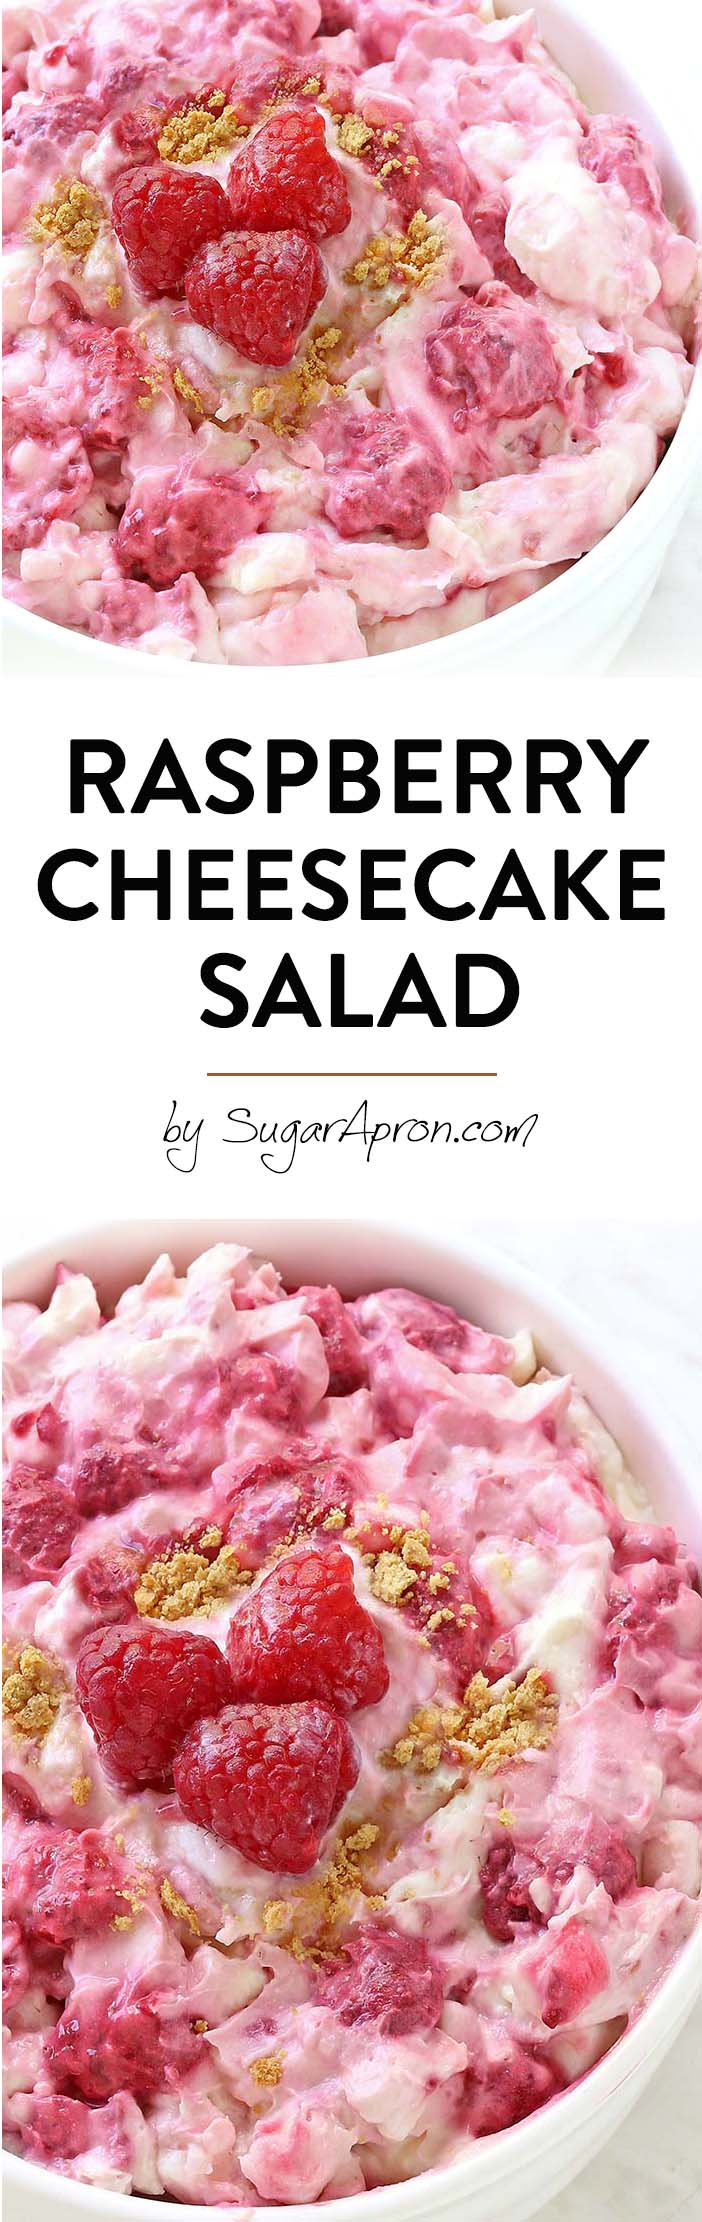 This isn't any old Fluff Salad recipe – it's a Raspberry Cheesecake Salad! This easy no-bake dessert salad is full of raspberries and graham crackers and is the perfect alternative to traditional fluff salad.